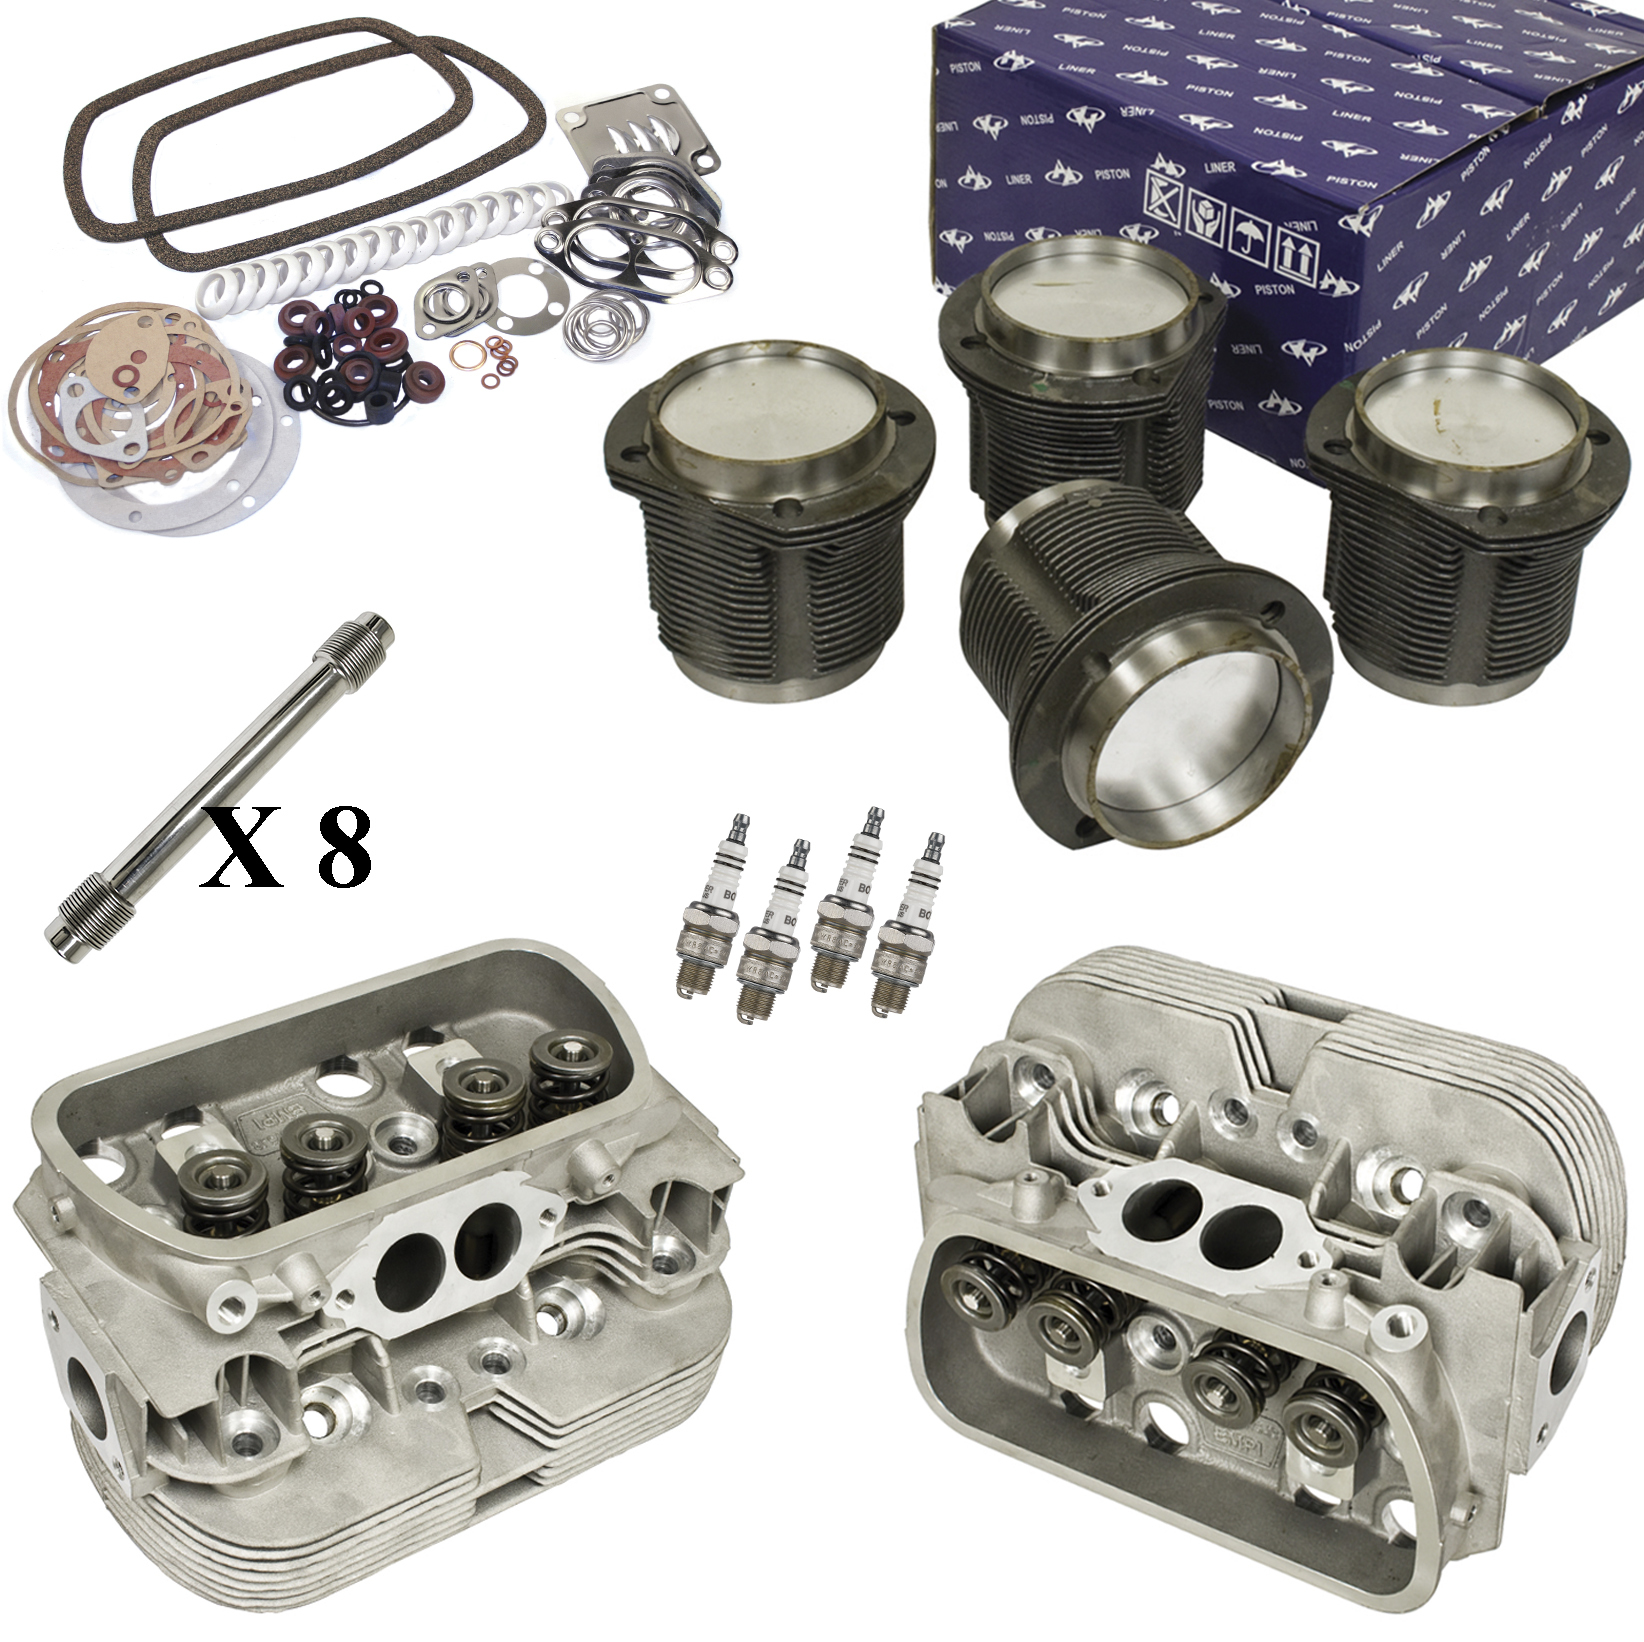 Vw Engine Rebuild Kits